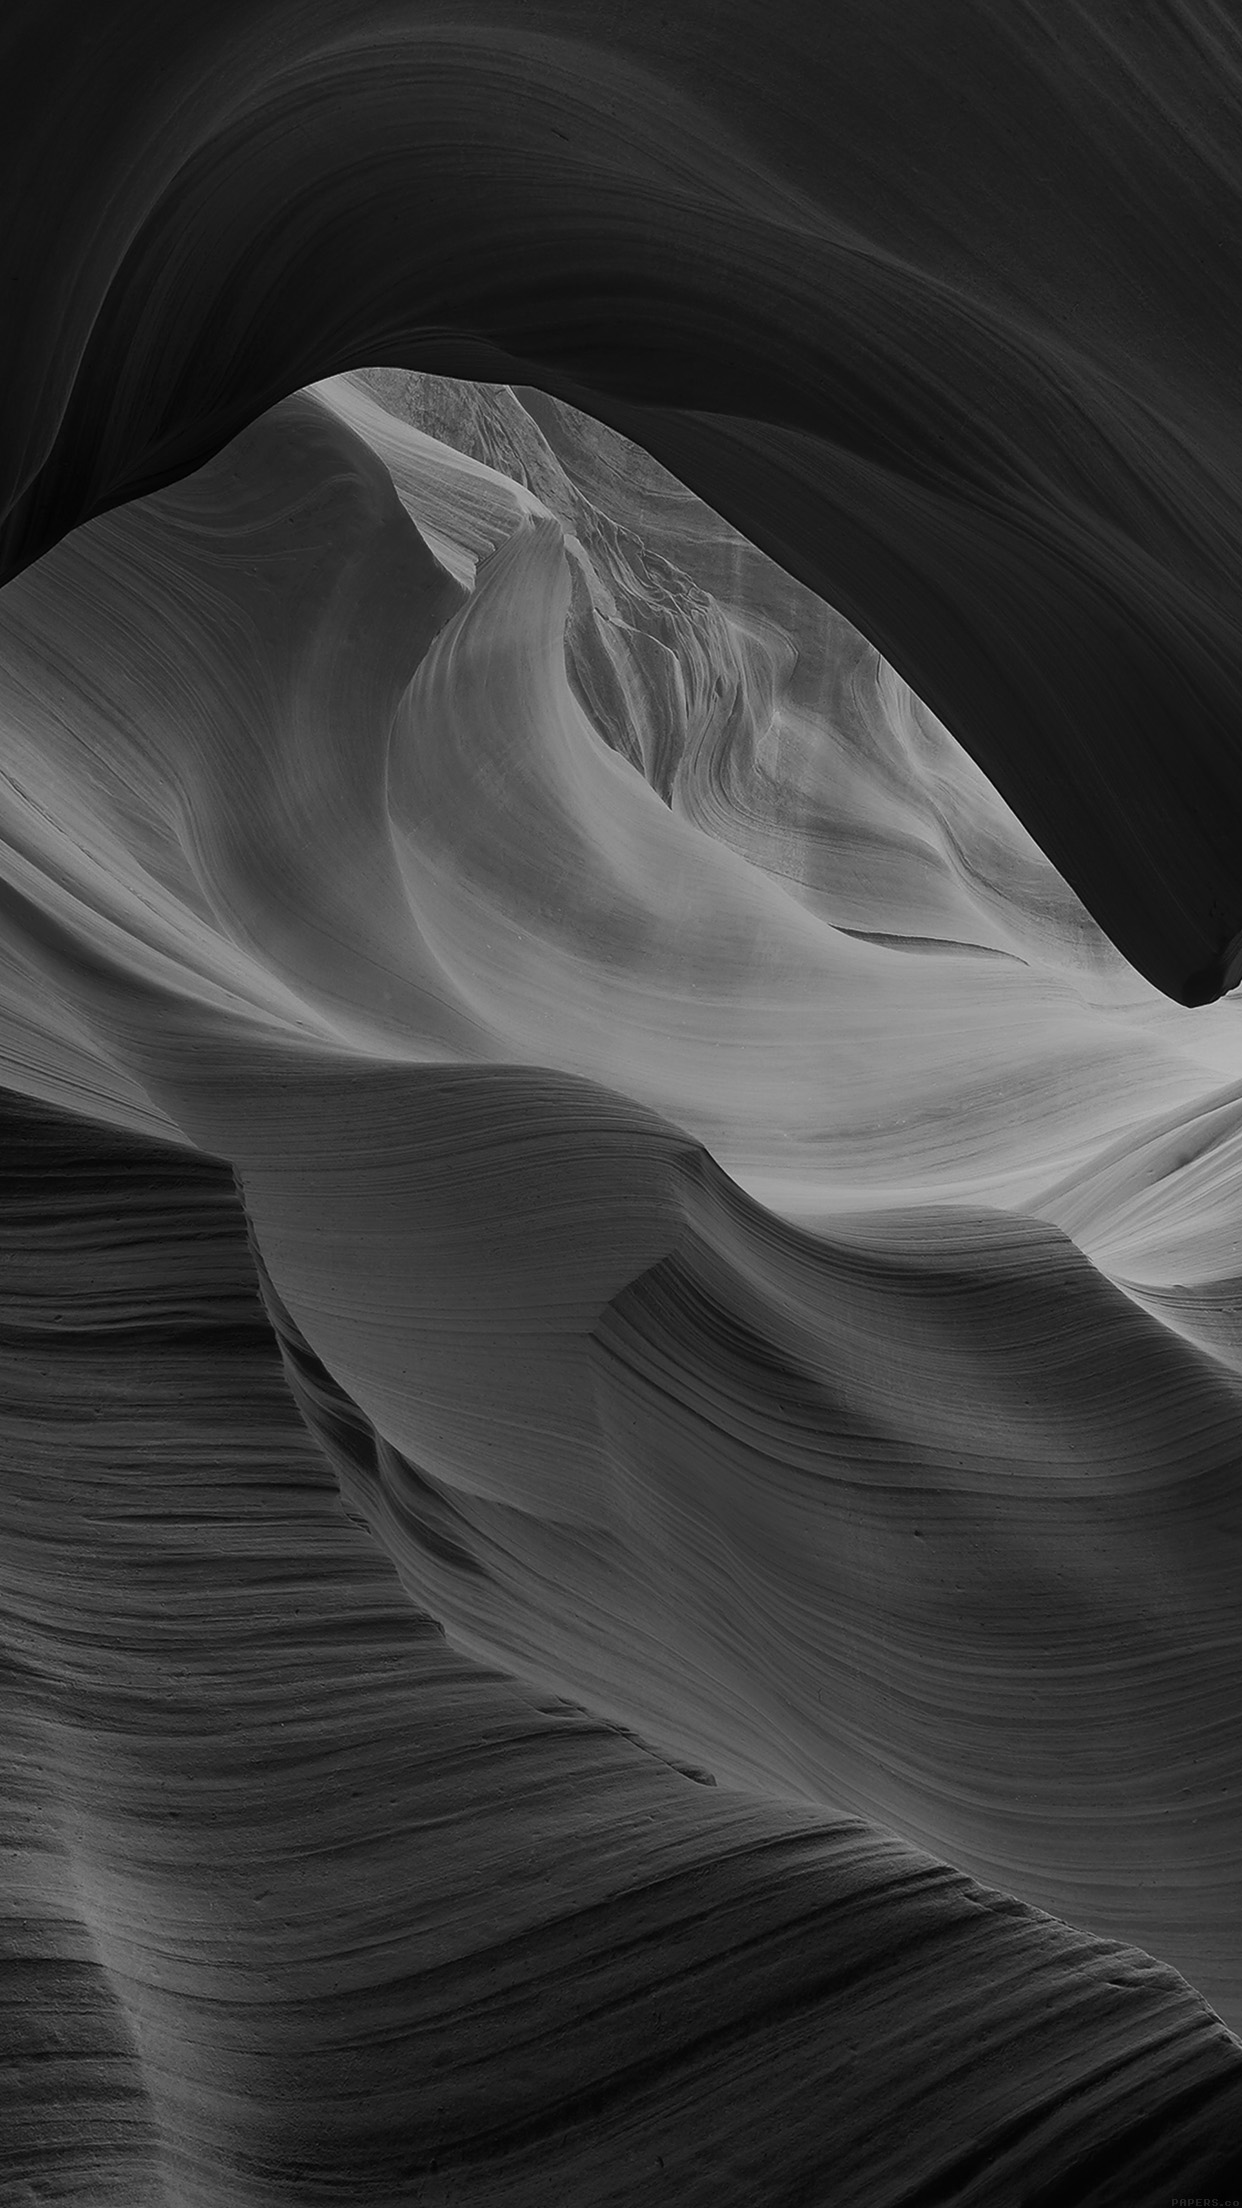 antelope canyon bw black mountain rock nature android wallpaper android hd wallpapers